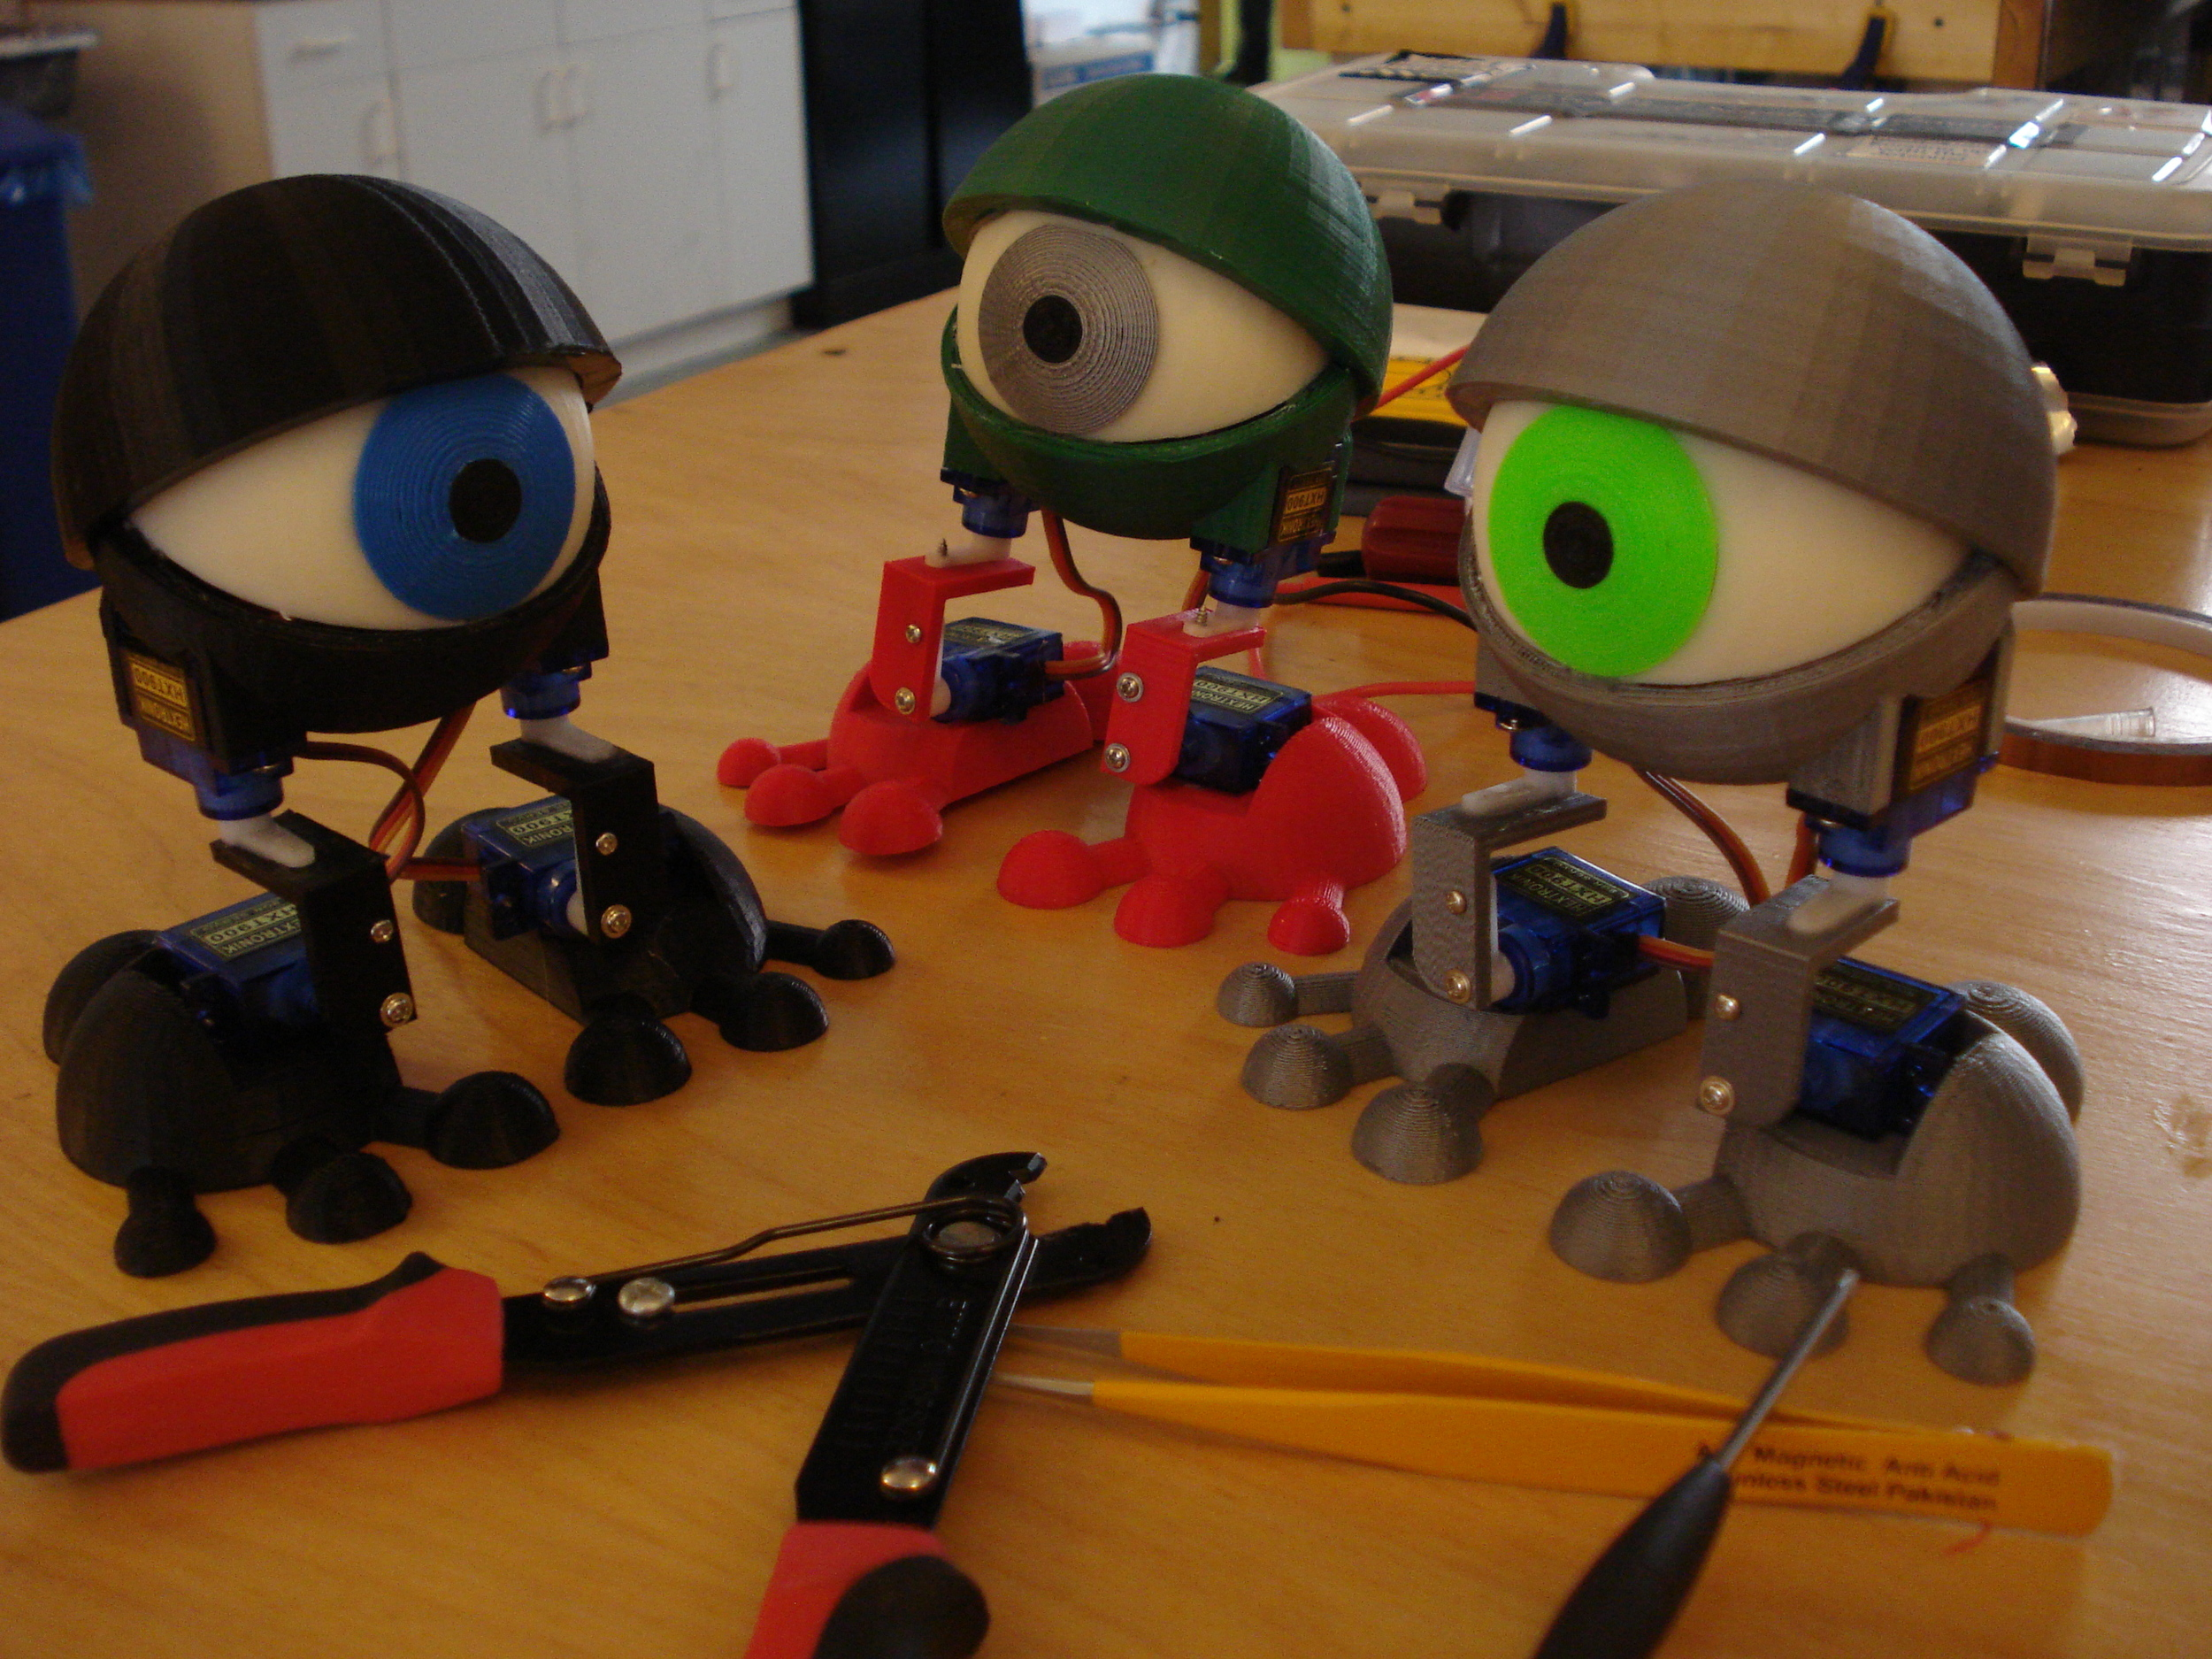 Minion found his friends! Now we can all walk to  @makerfairekc  and prepare take over the world.